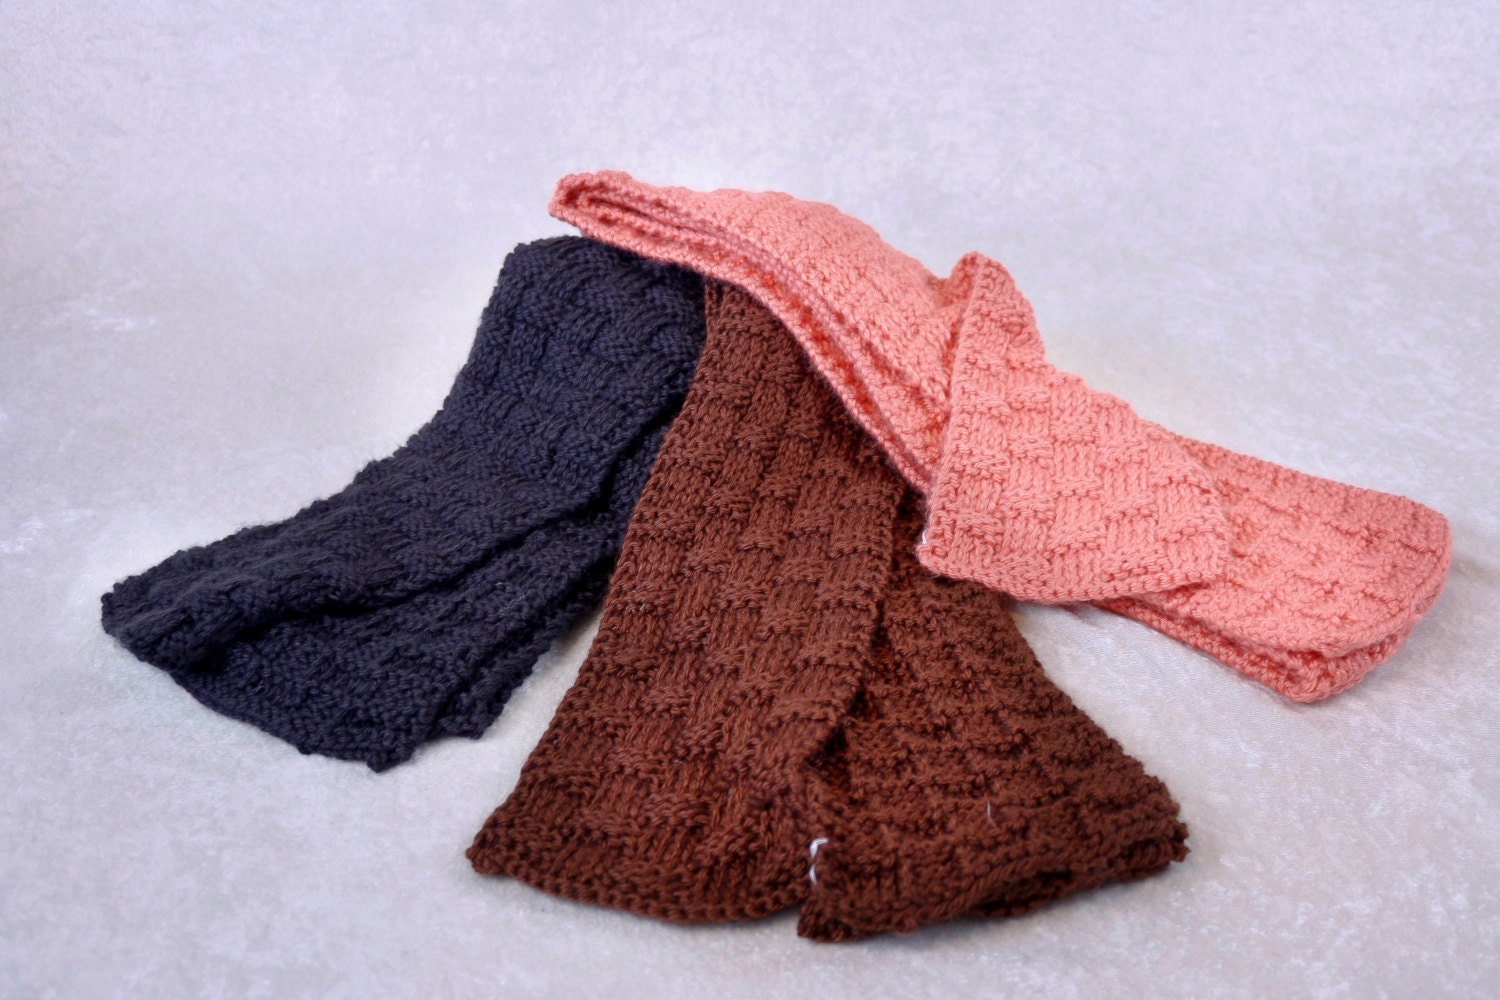 Request a custom order and have something made just for you Homemade Knitted Scarves For Sale